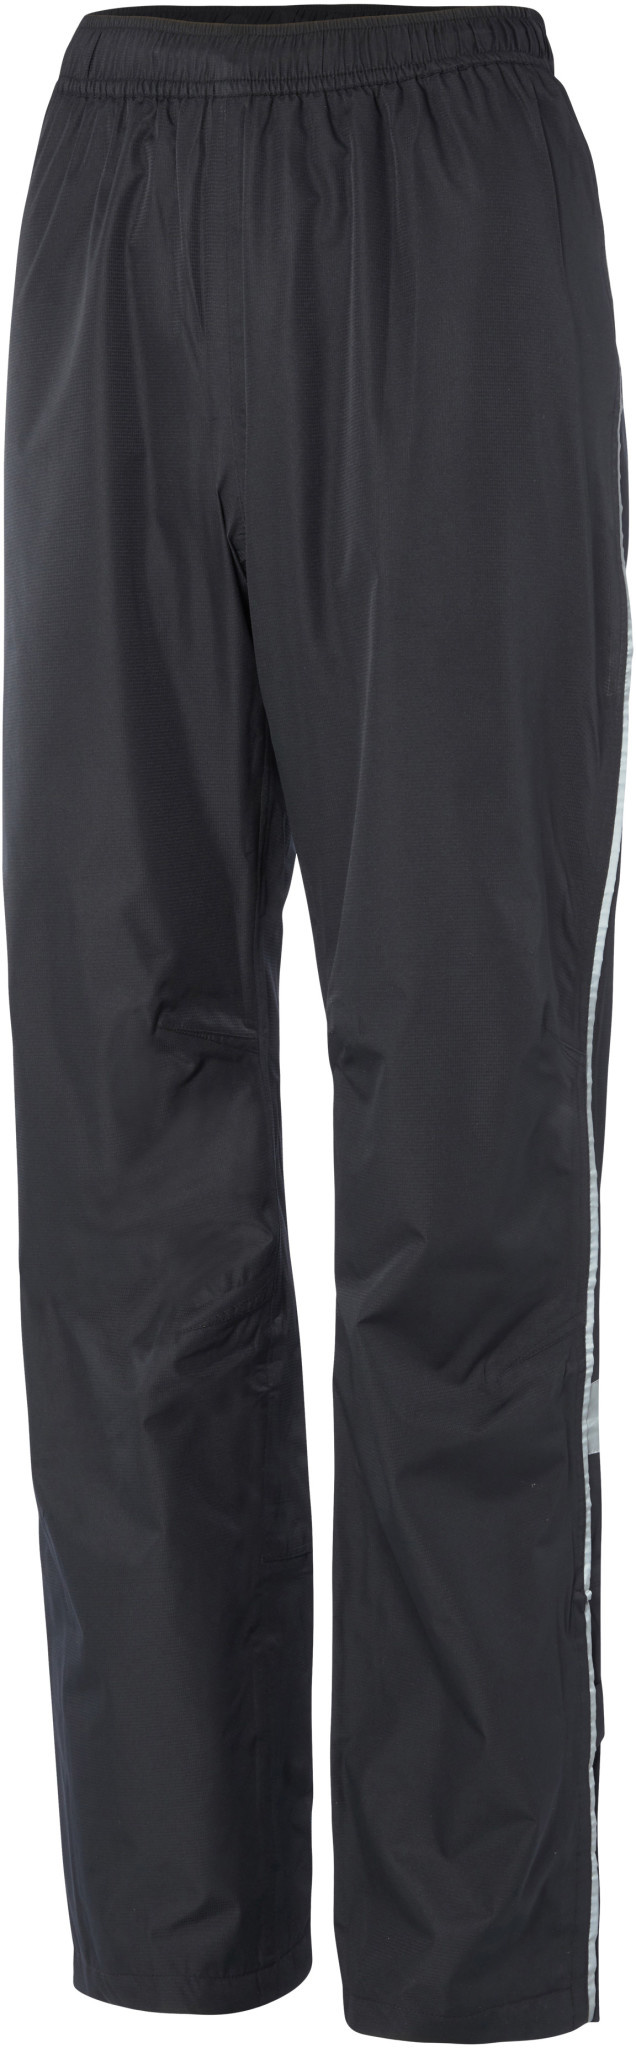 Madison Bicycle Cycle Bike Protec Over Trousers Black